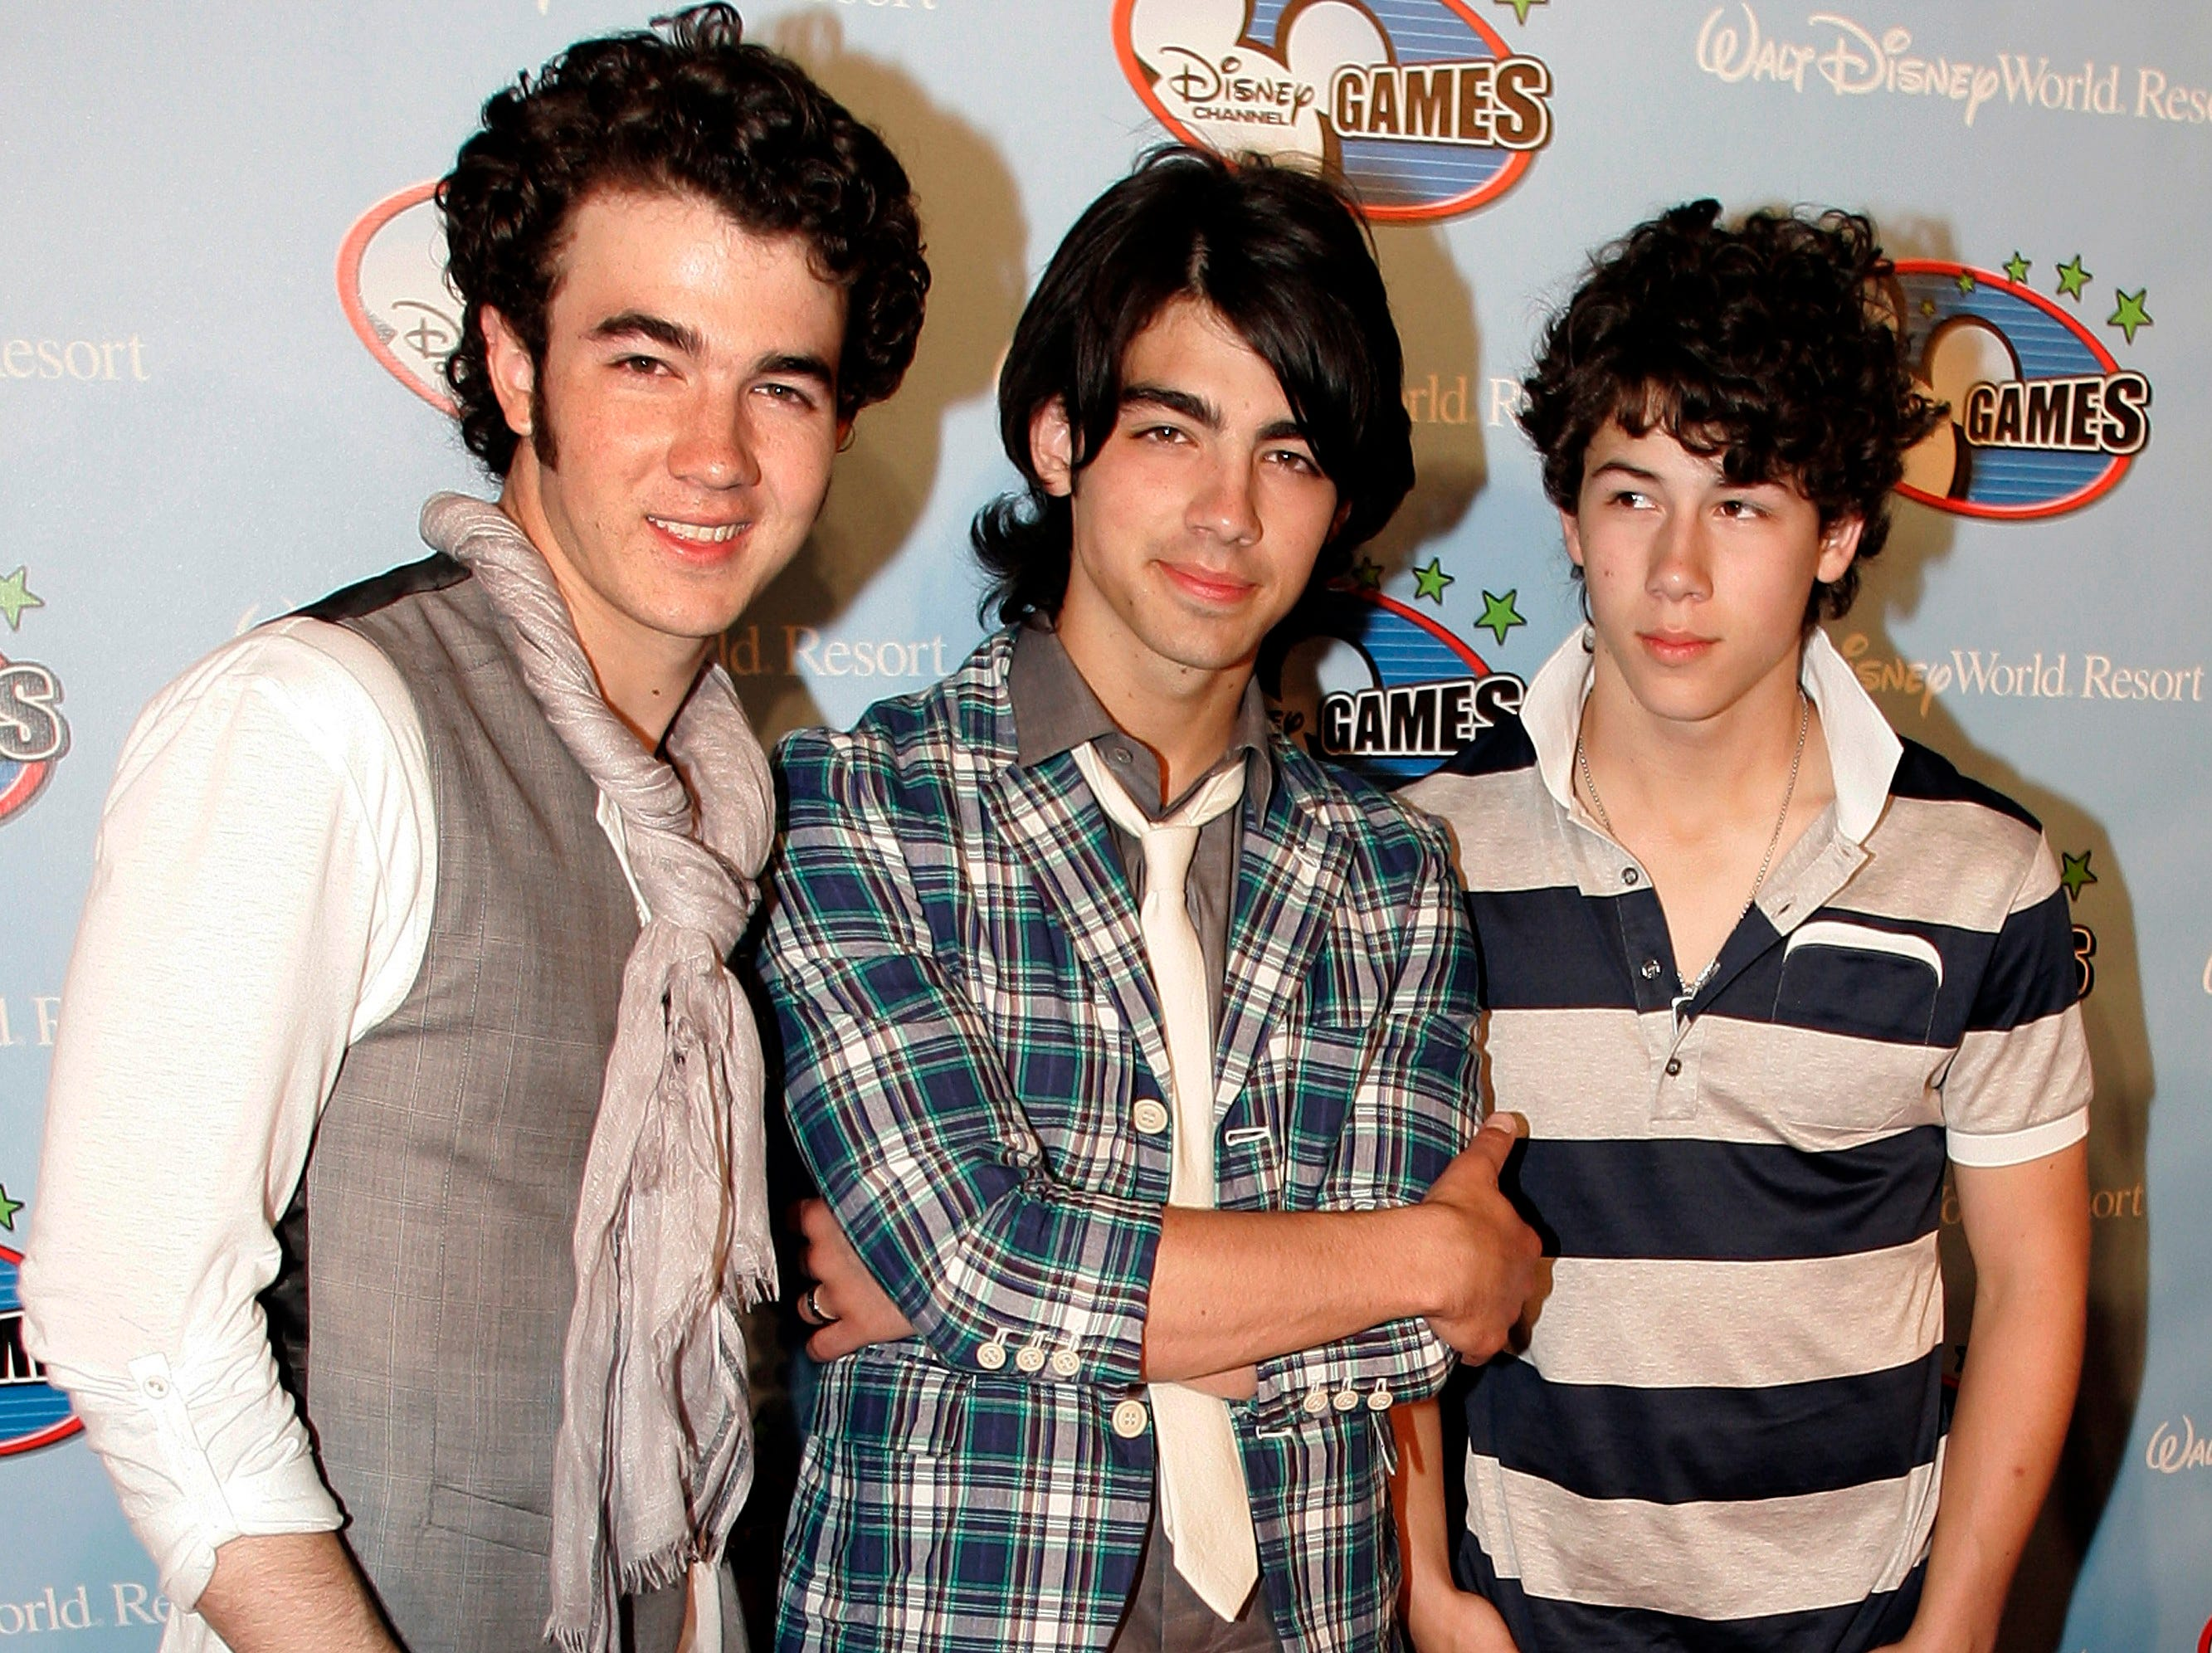 ** FILE ** In this May 2, 2008 file photo, The Jonas Brothers, from left, Kevin Jonas, Joe Jonas and Nick Jonas, pose on the red carpet for the Disney Channel Games in Lake Buena Vista, Fla. (AP Photo/Reinhold Matay, file) ORG XMIT: FLRM204